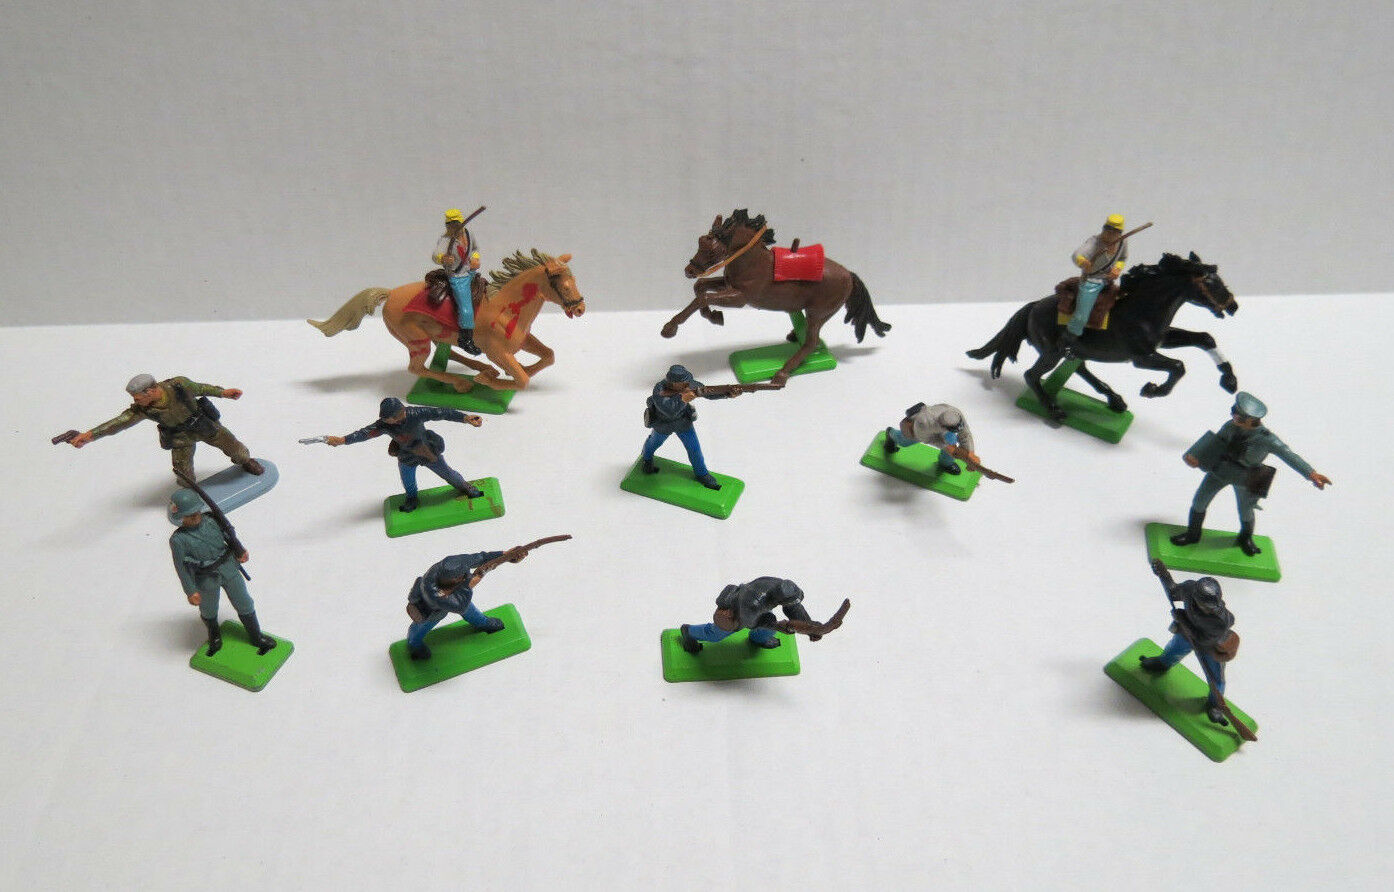 12Britains Deetail Toy Soldiers 10p Lot 1971 vtg -1 1977 & 1 1978 Super Deetail